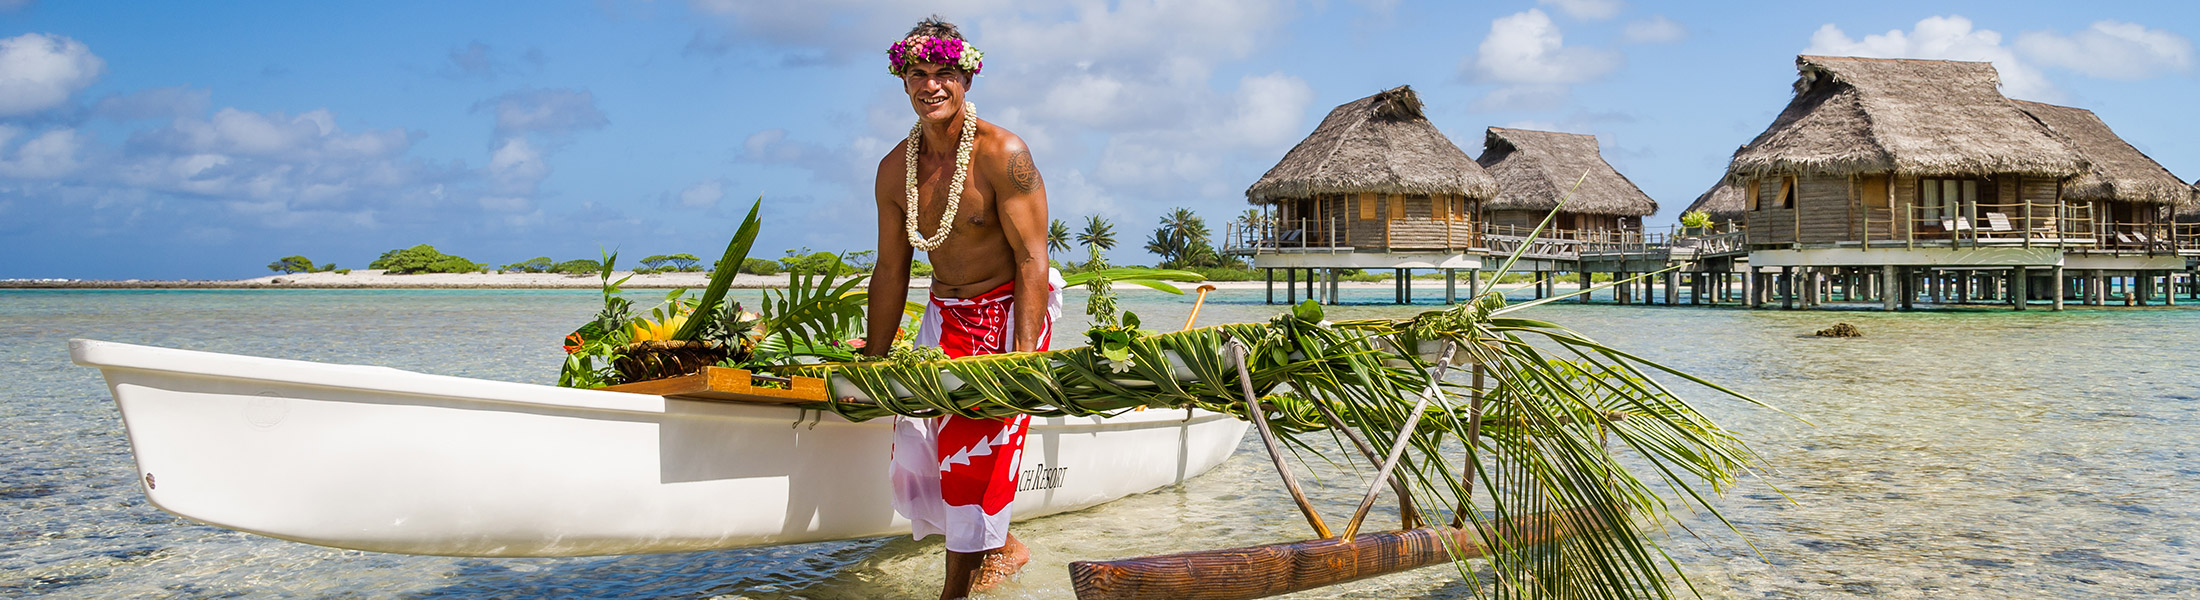 Traditional Pacific Island man pushing a boat in front of overwater villas in French Polynesia